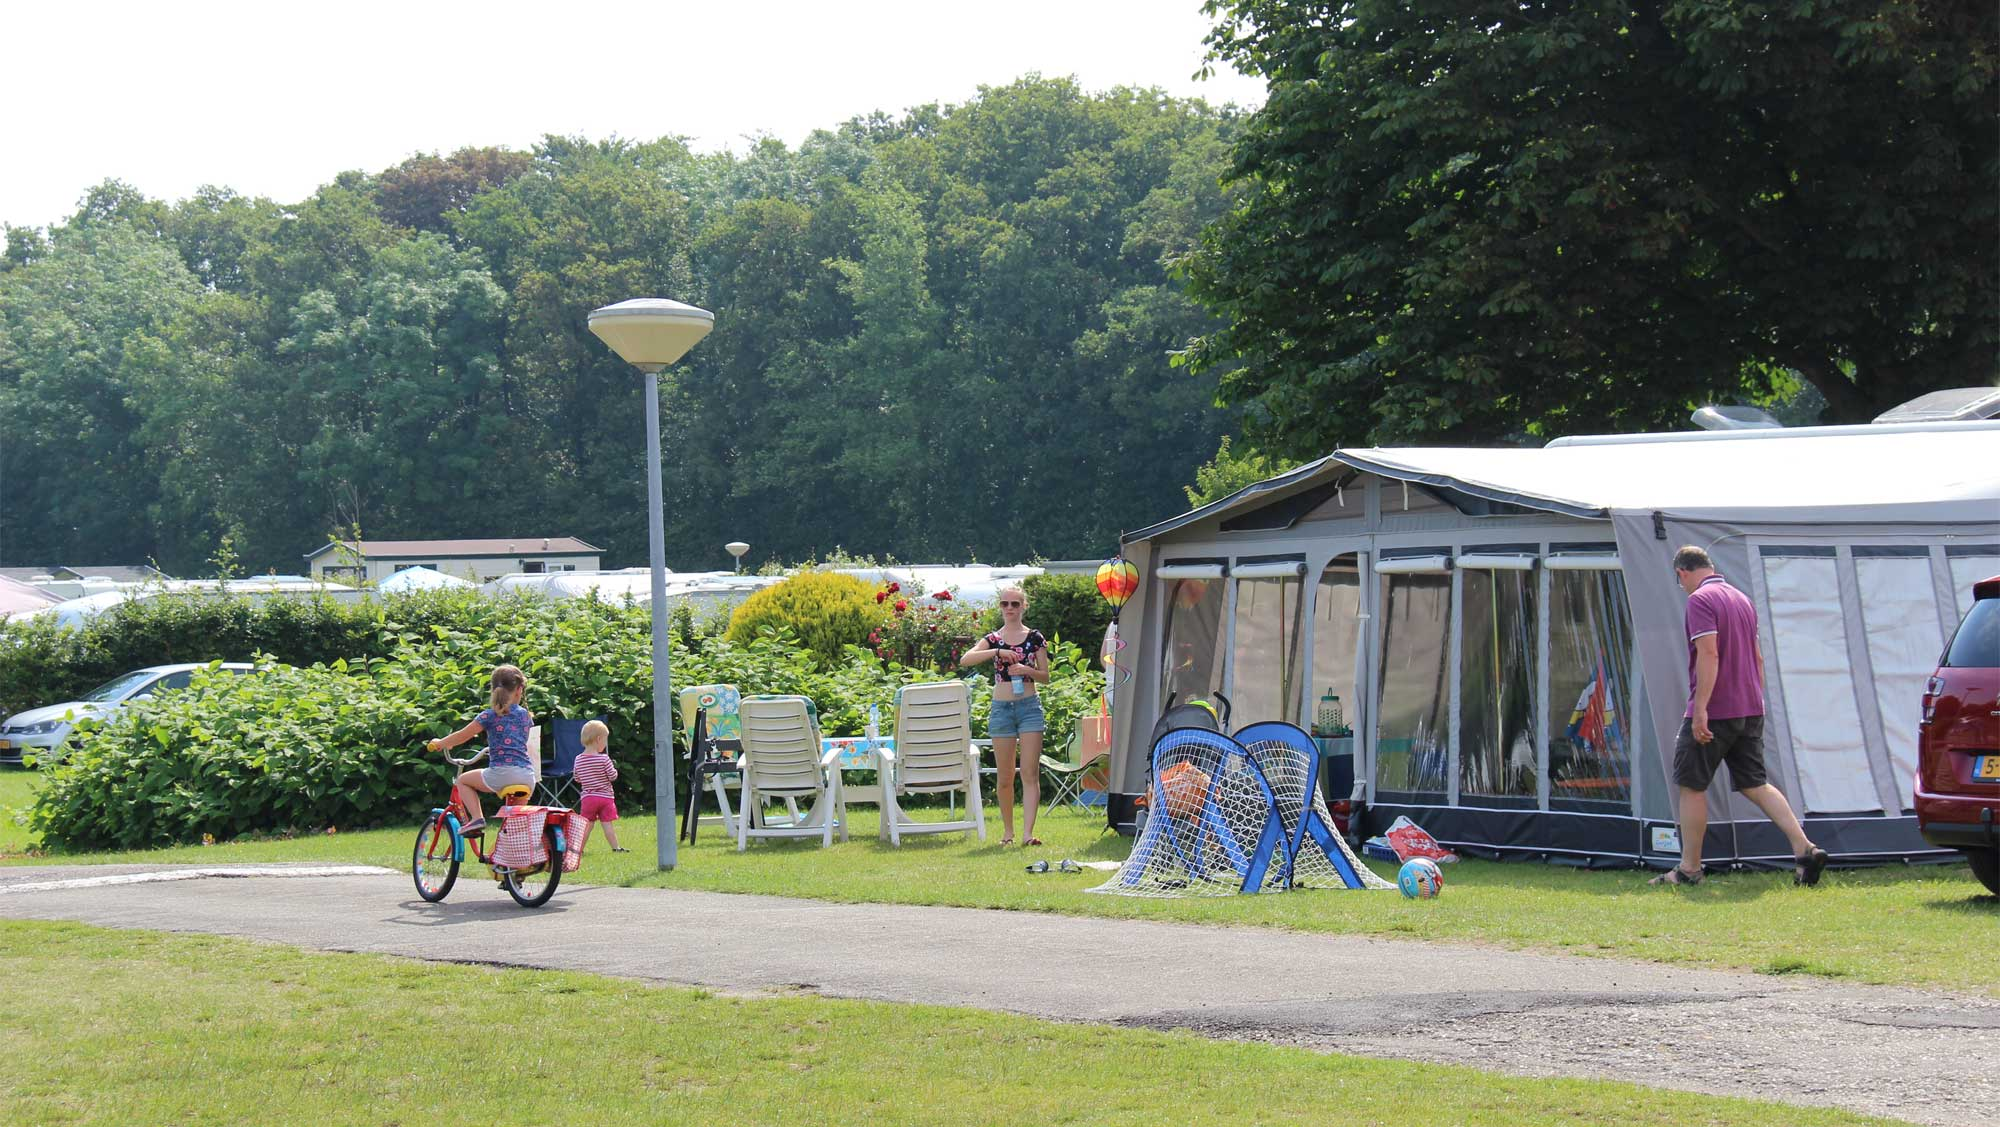 Comfortplaats kamperen Molecaten Park Waterbos 01